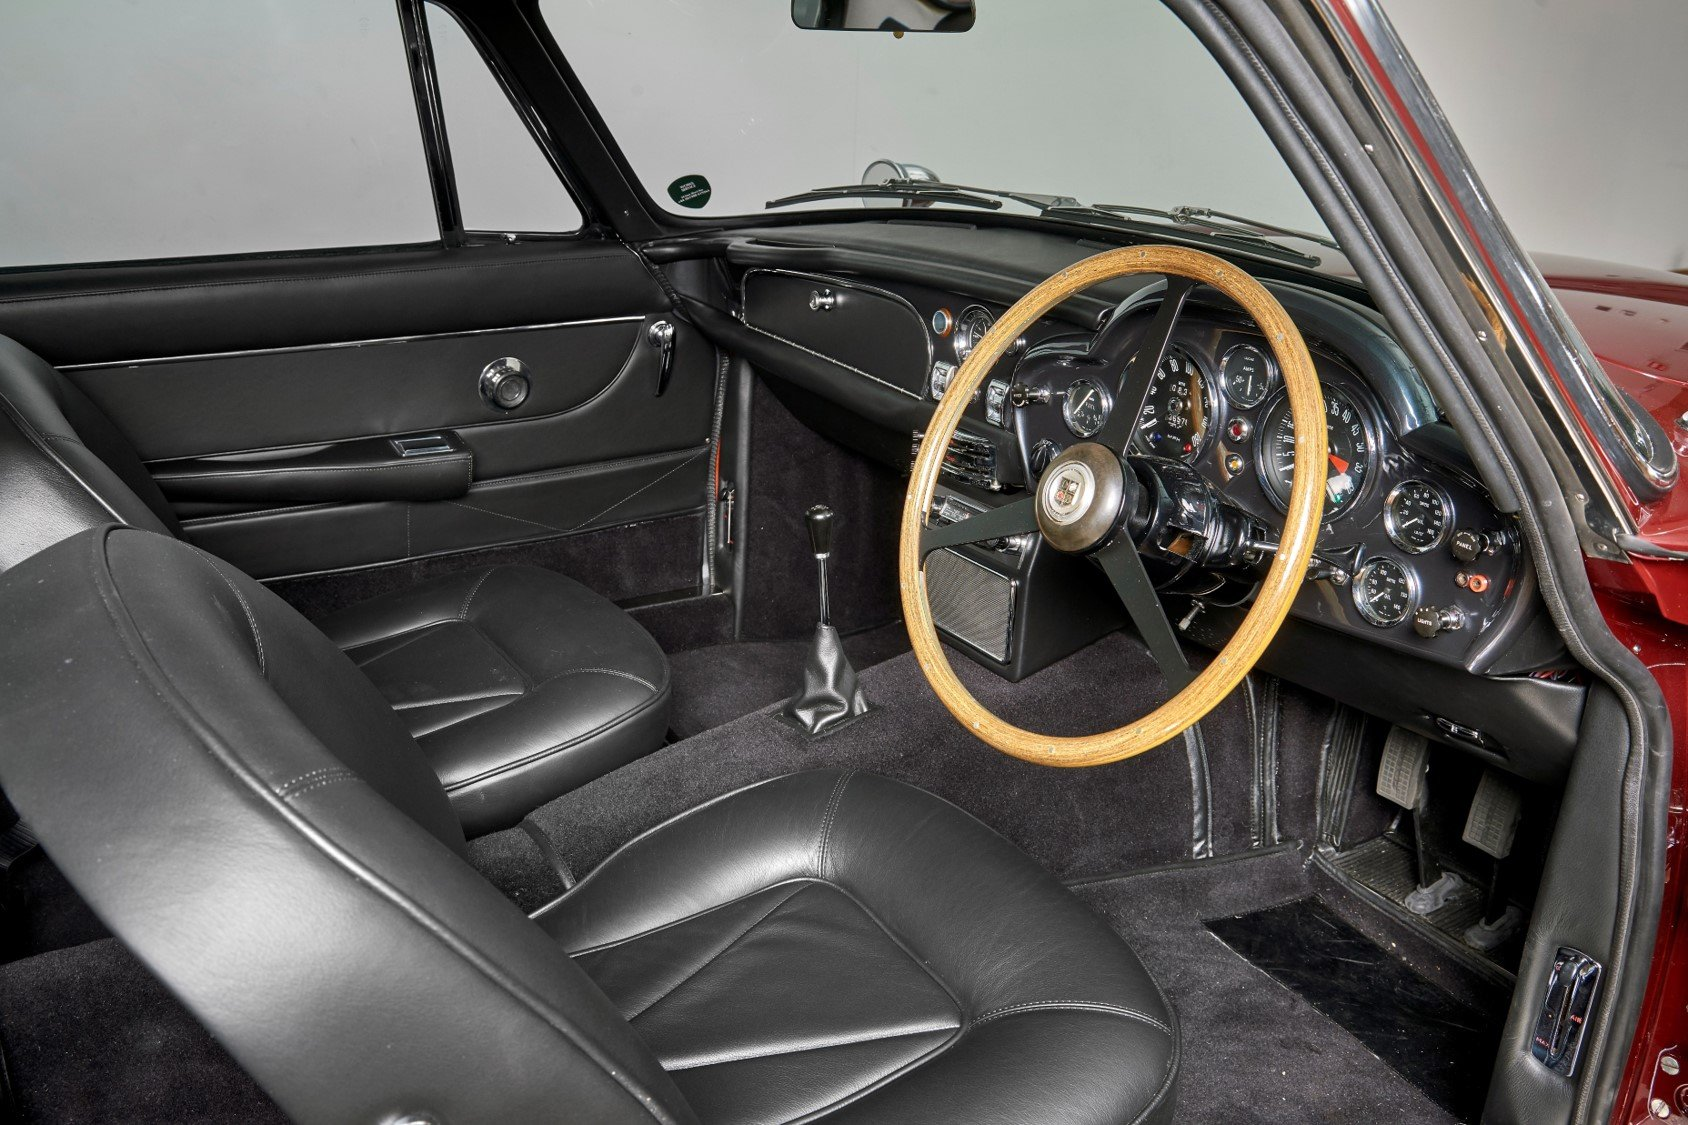 1966 Aston Martin DB6 Vantage Saloon For Sale (picture 4 of 6)